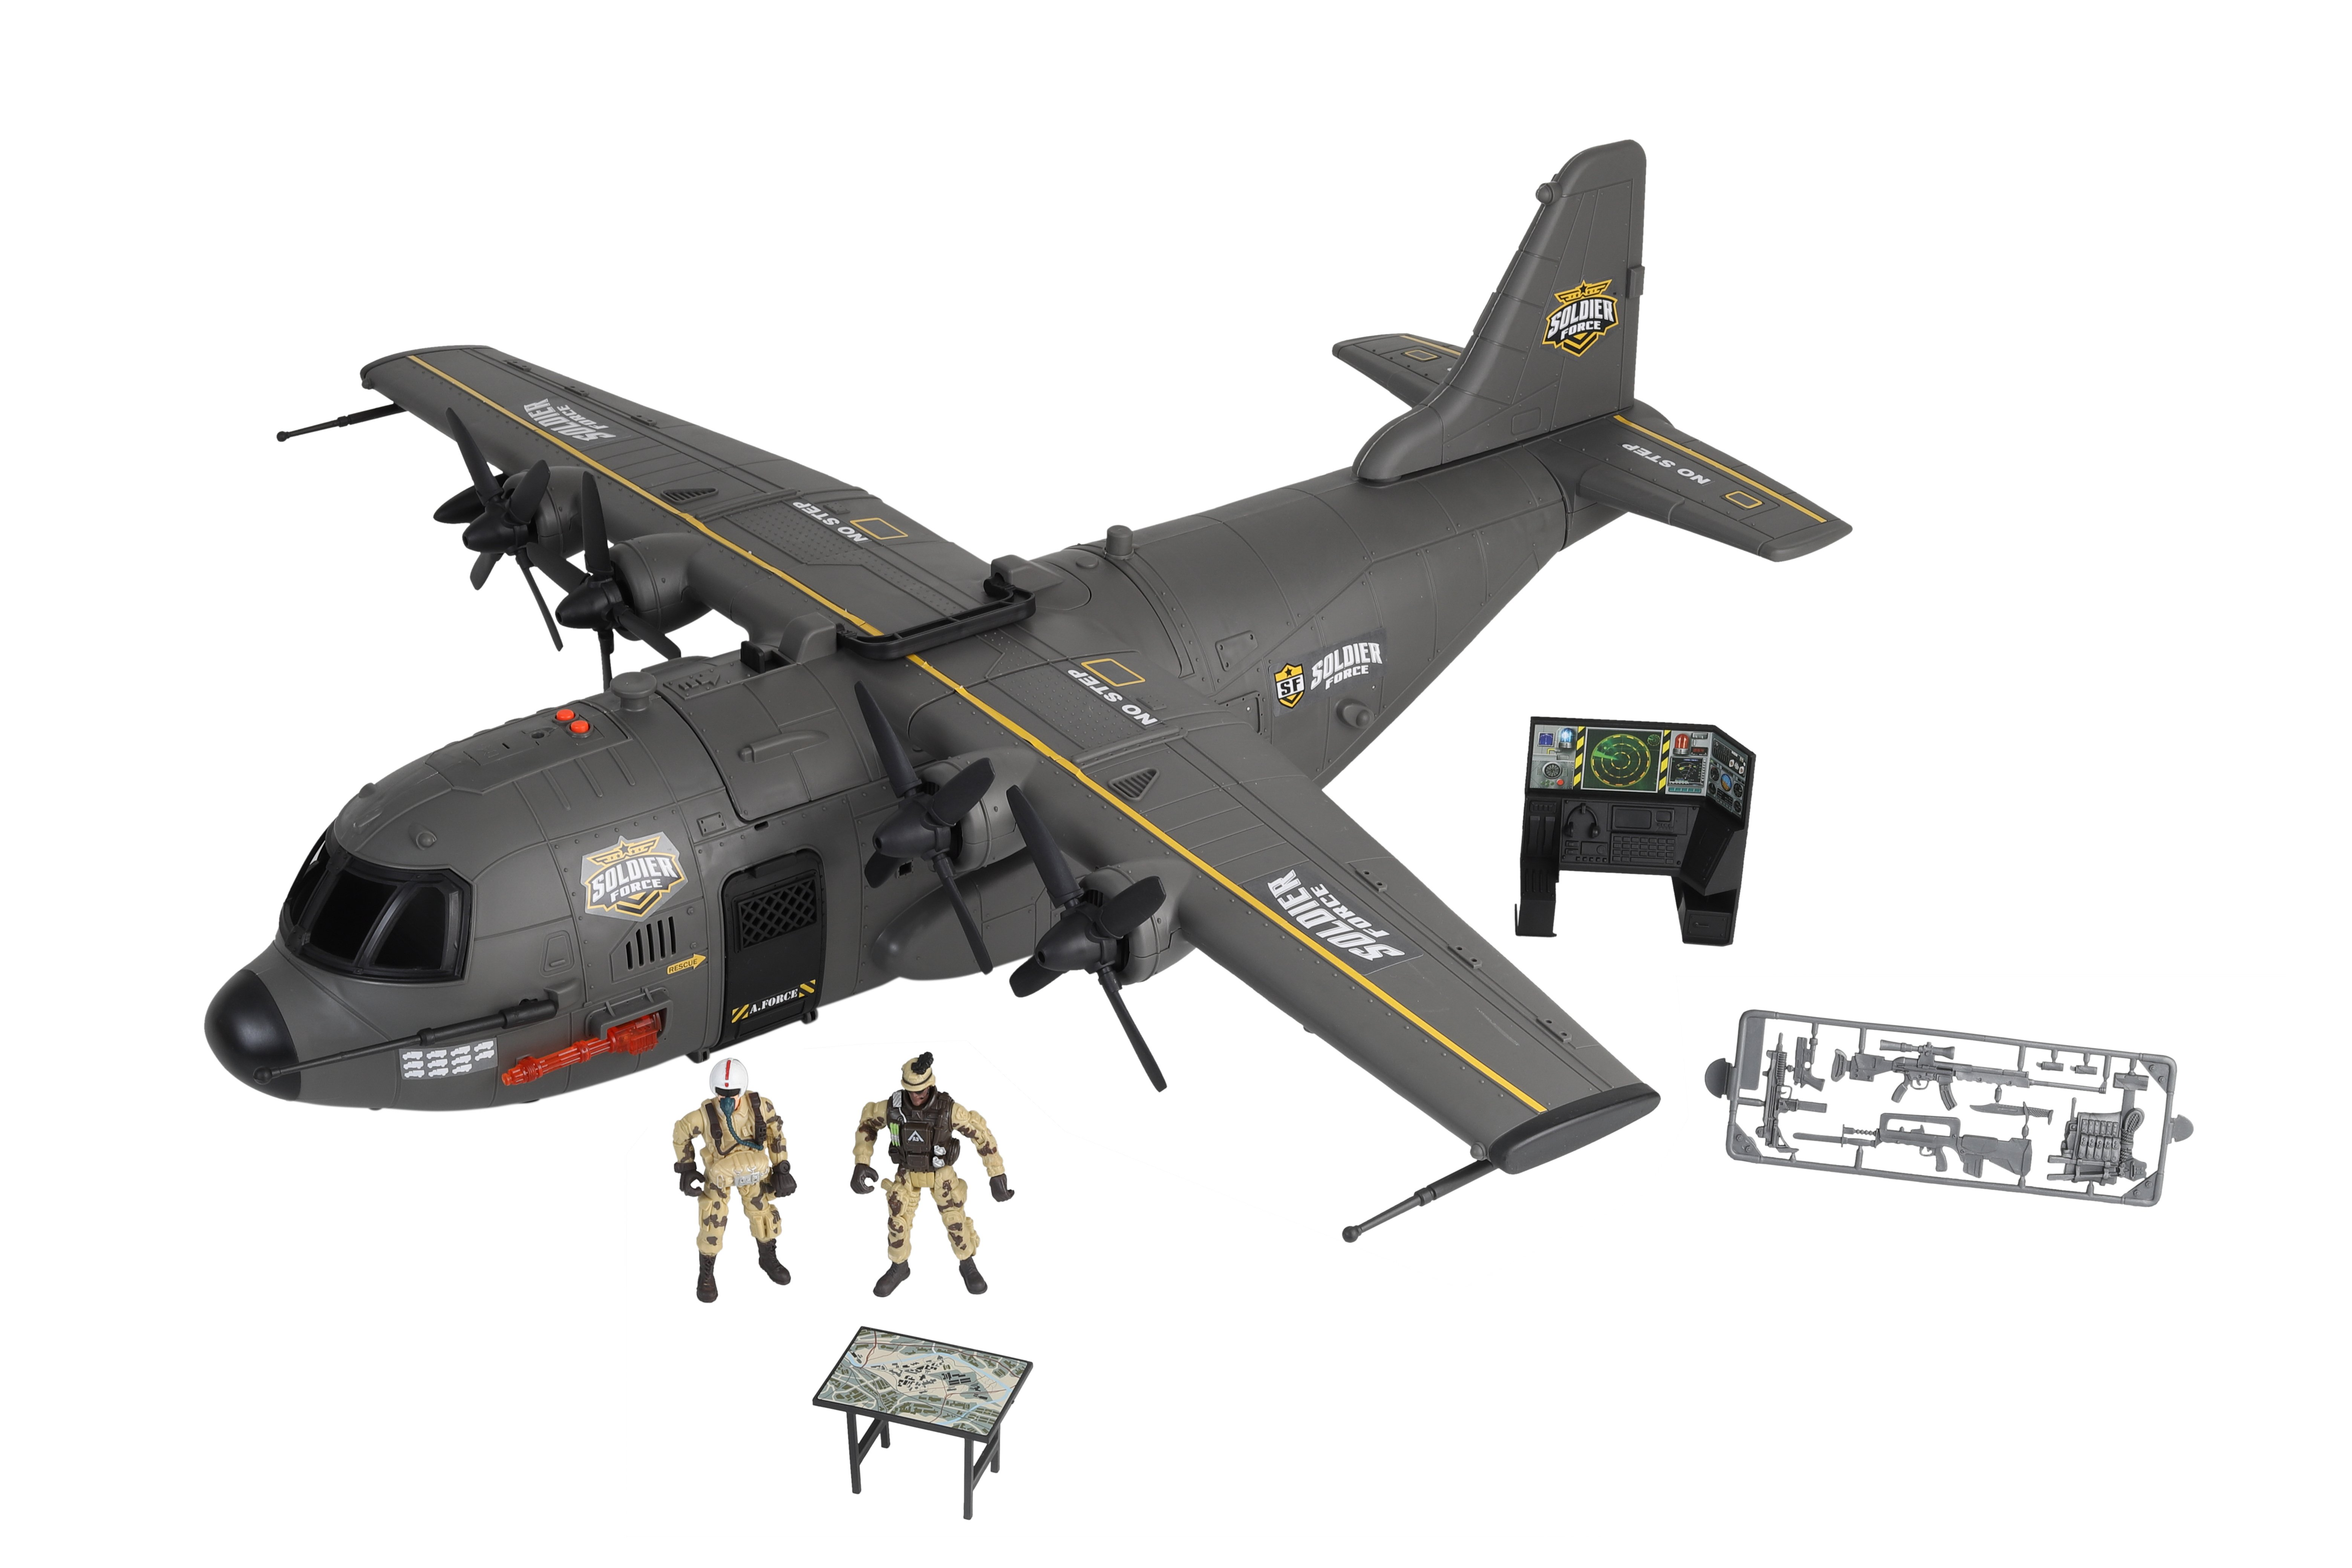 Soldier Force - Hercules Cargo Plane Playset (545069)